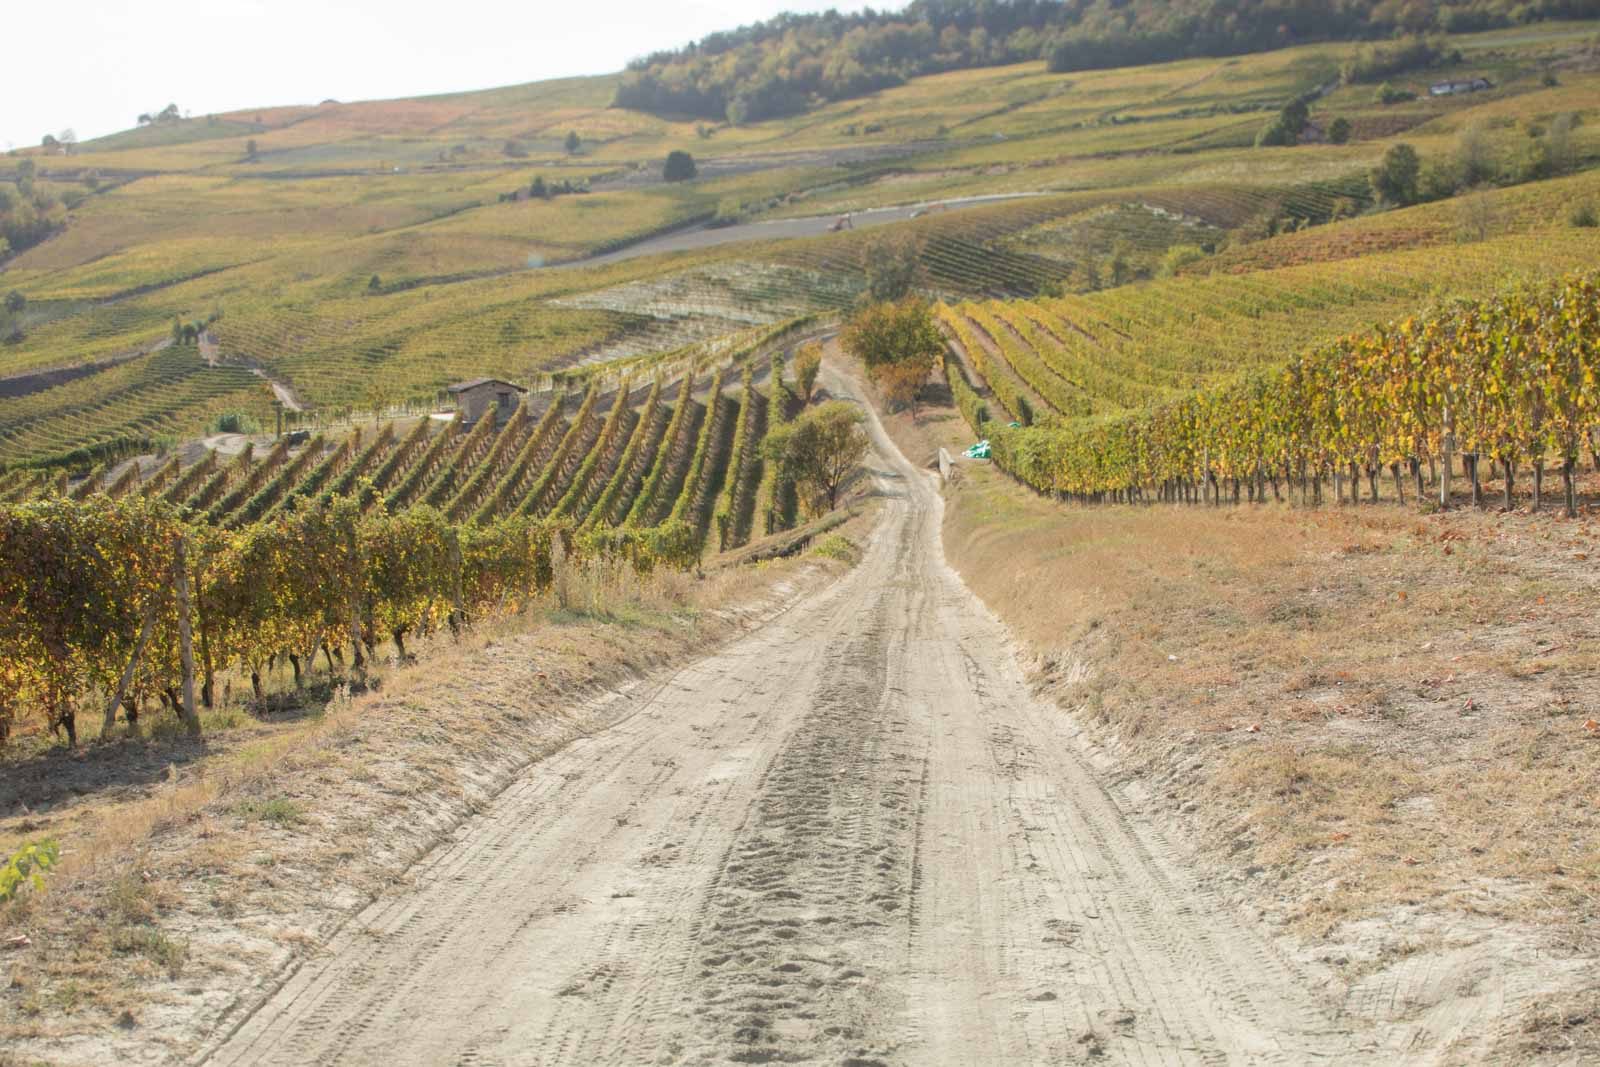 The Cerequio MGA, a Barolo Cru vineyard in between La Morra and Barolo ©Kevin Day/Opening a Bottle